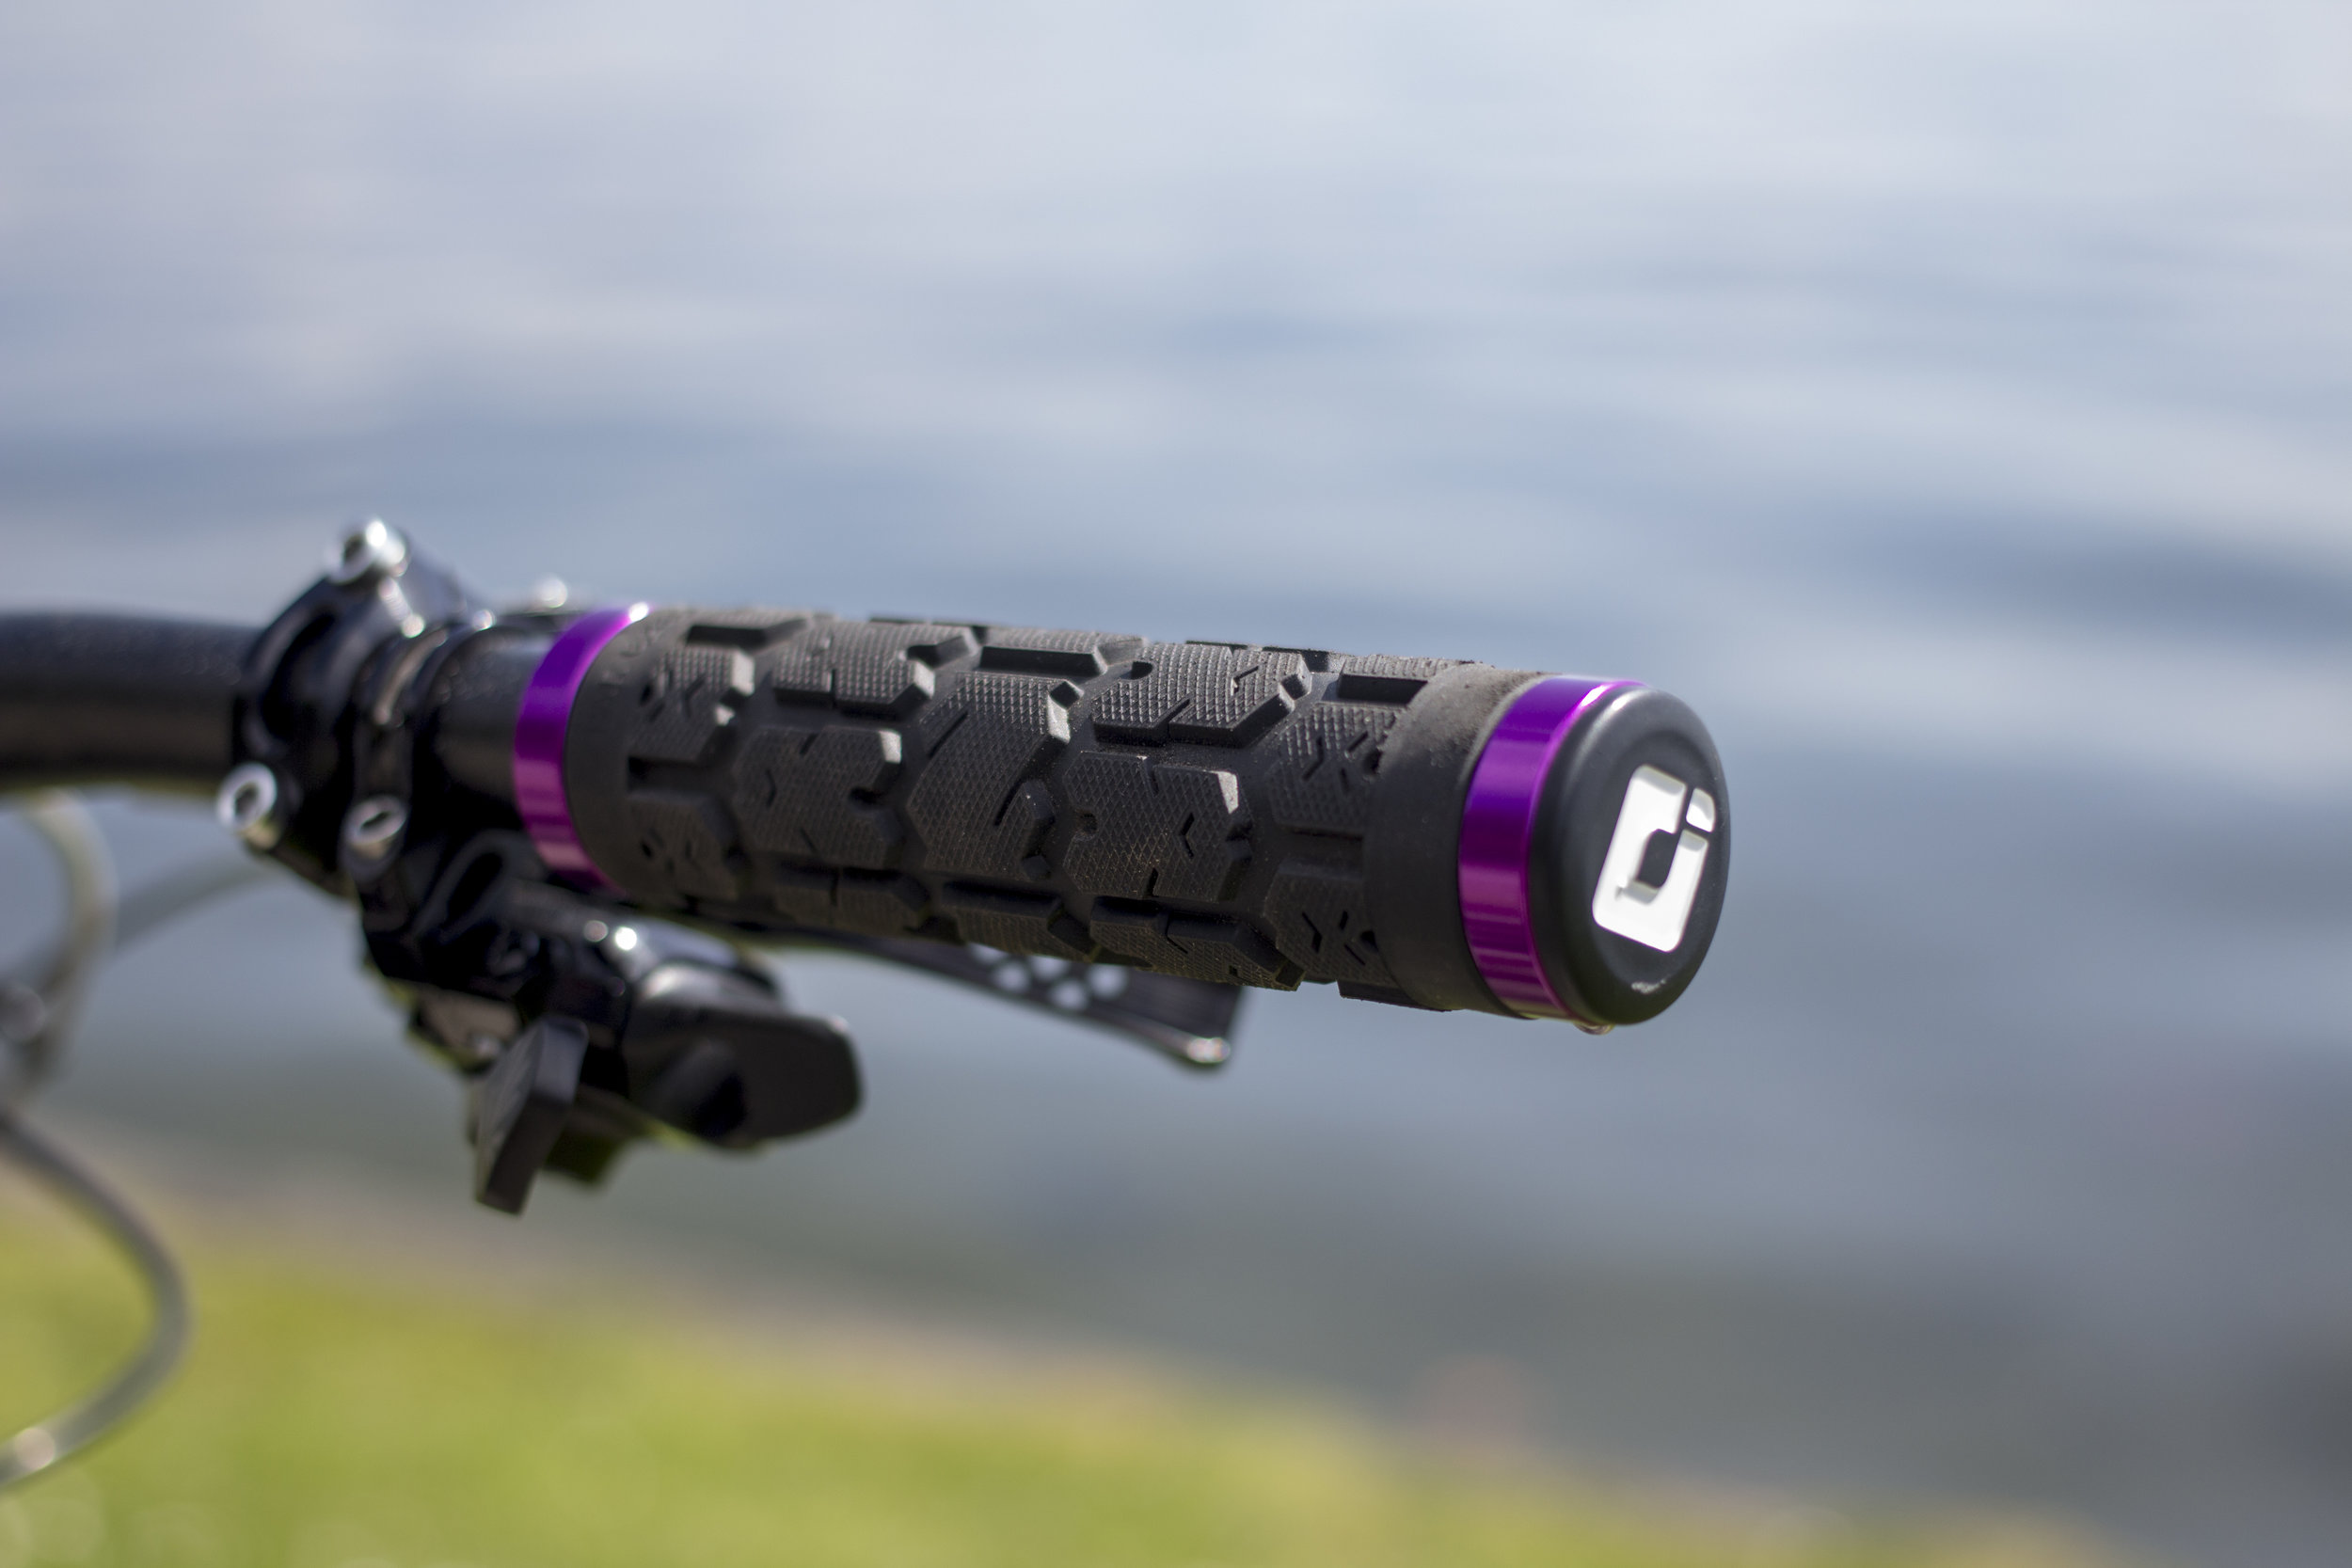 ODI grips are grippy but also can be customized with purple bits. (Other colors available, but why would you?!)